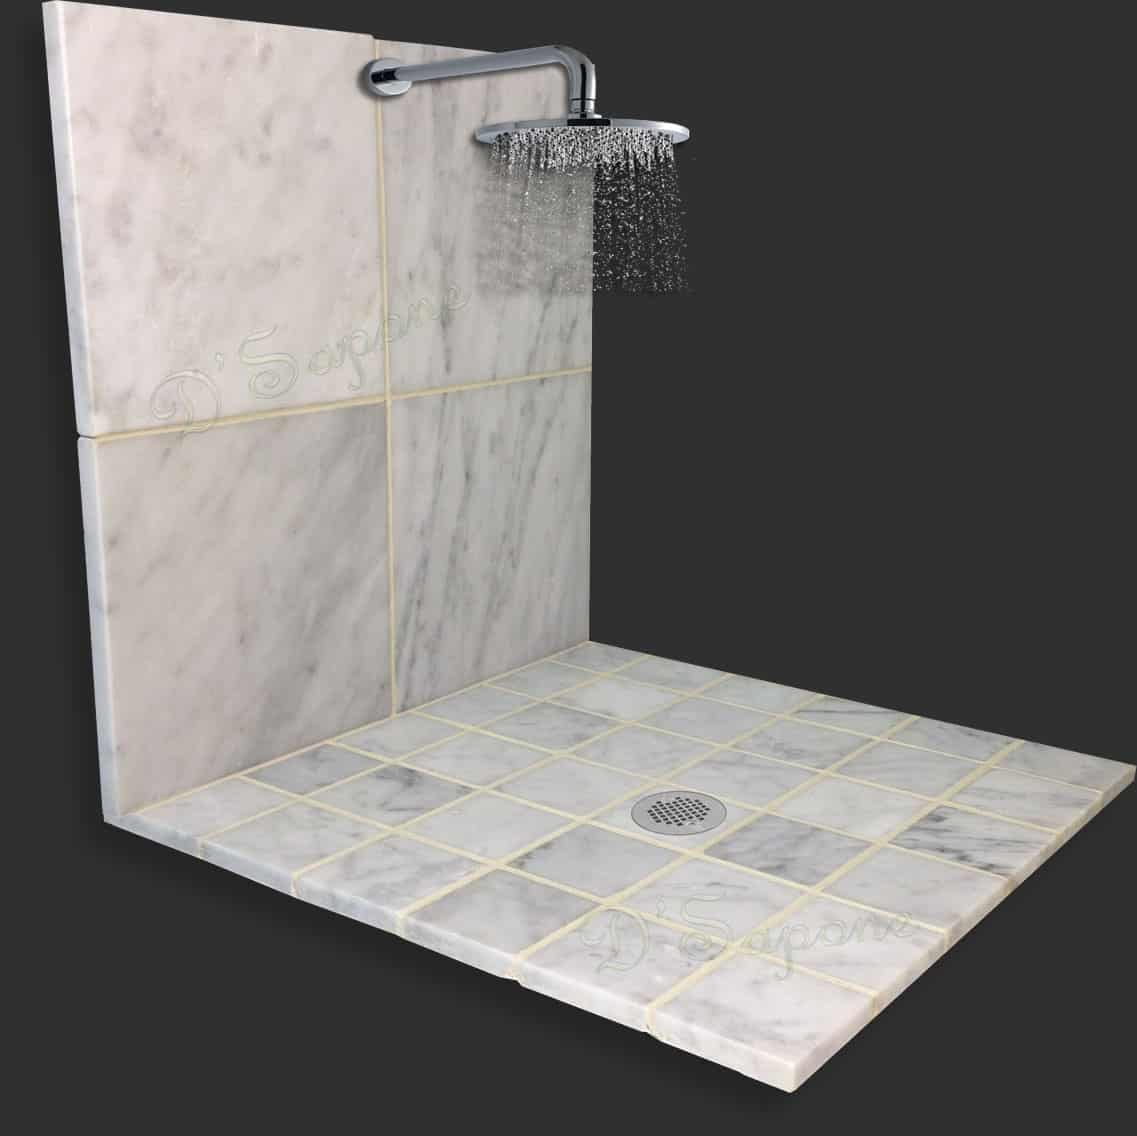 floors sealing floor gallery repair tile sealer best grout cleaning restoration ideas for decoration color shower